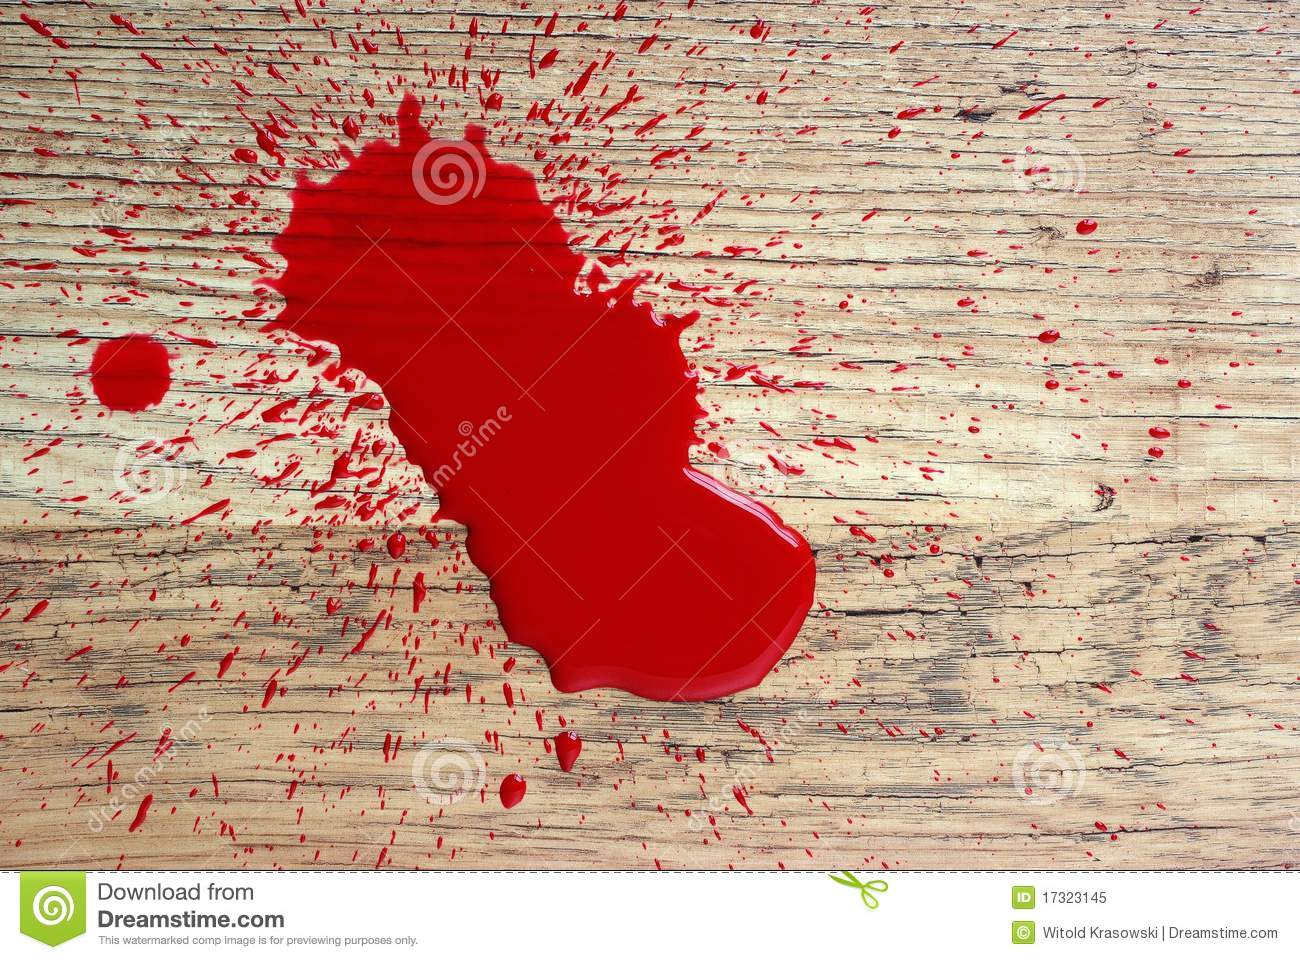 Blood On Floor Royalty Free Stock Photo Image 17323145